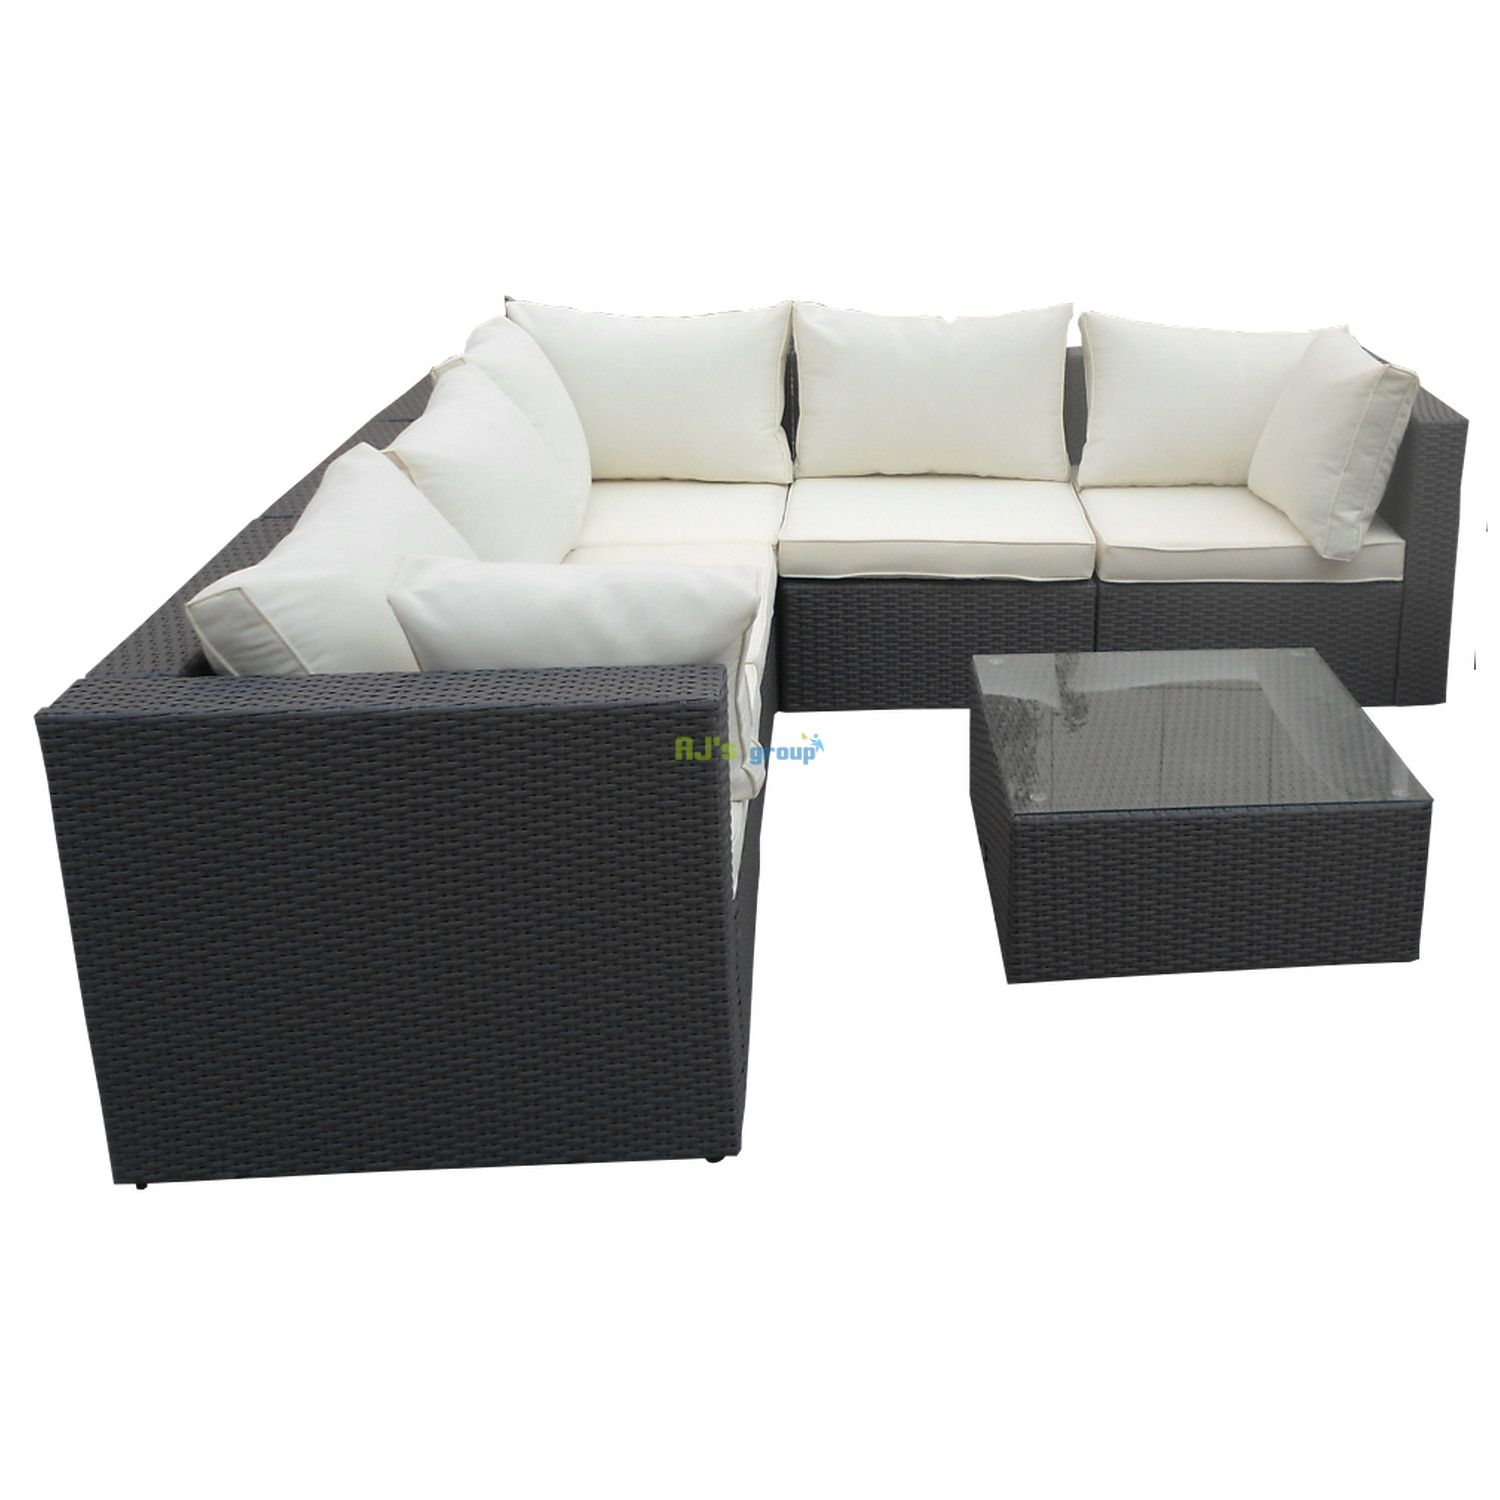 poly rattan gartenm bel havanna alu garnitur lounge garten. Black Bedroom Furniture Sets. Home Design Ideas